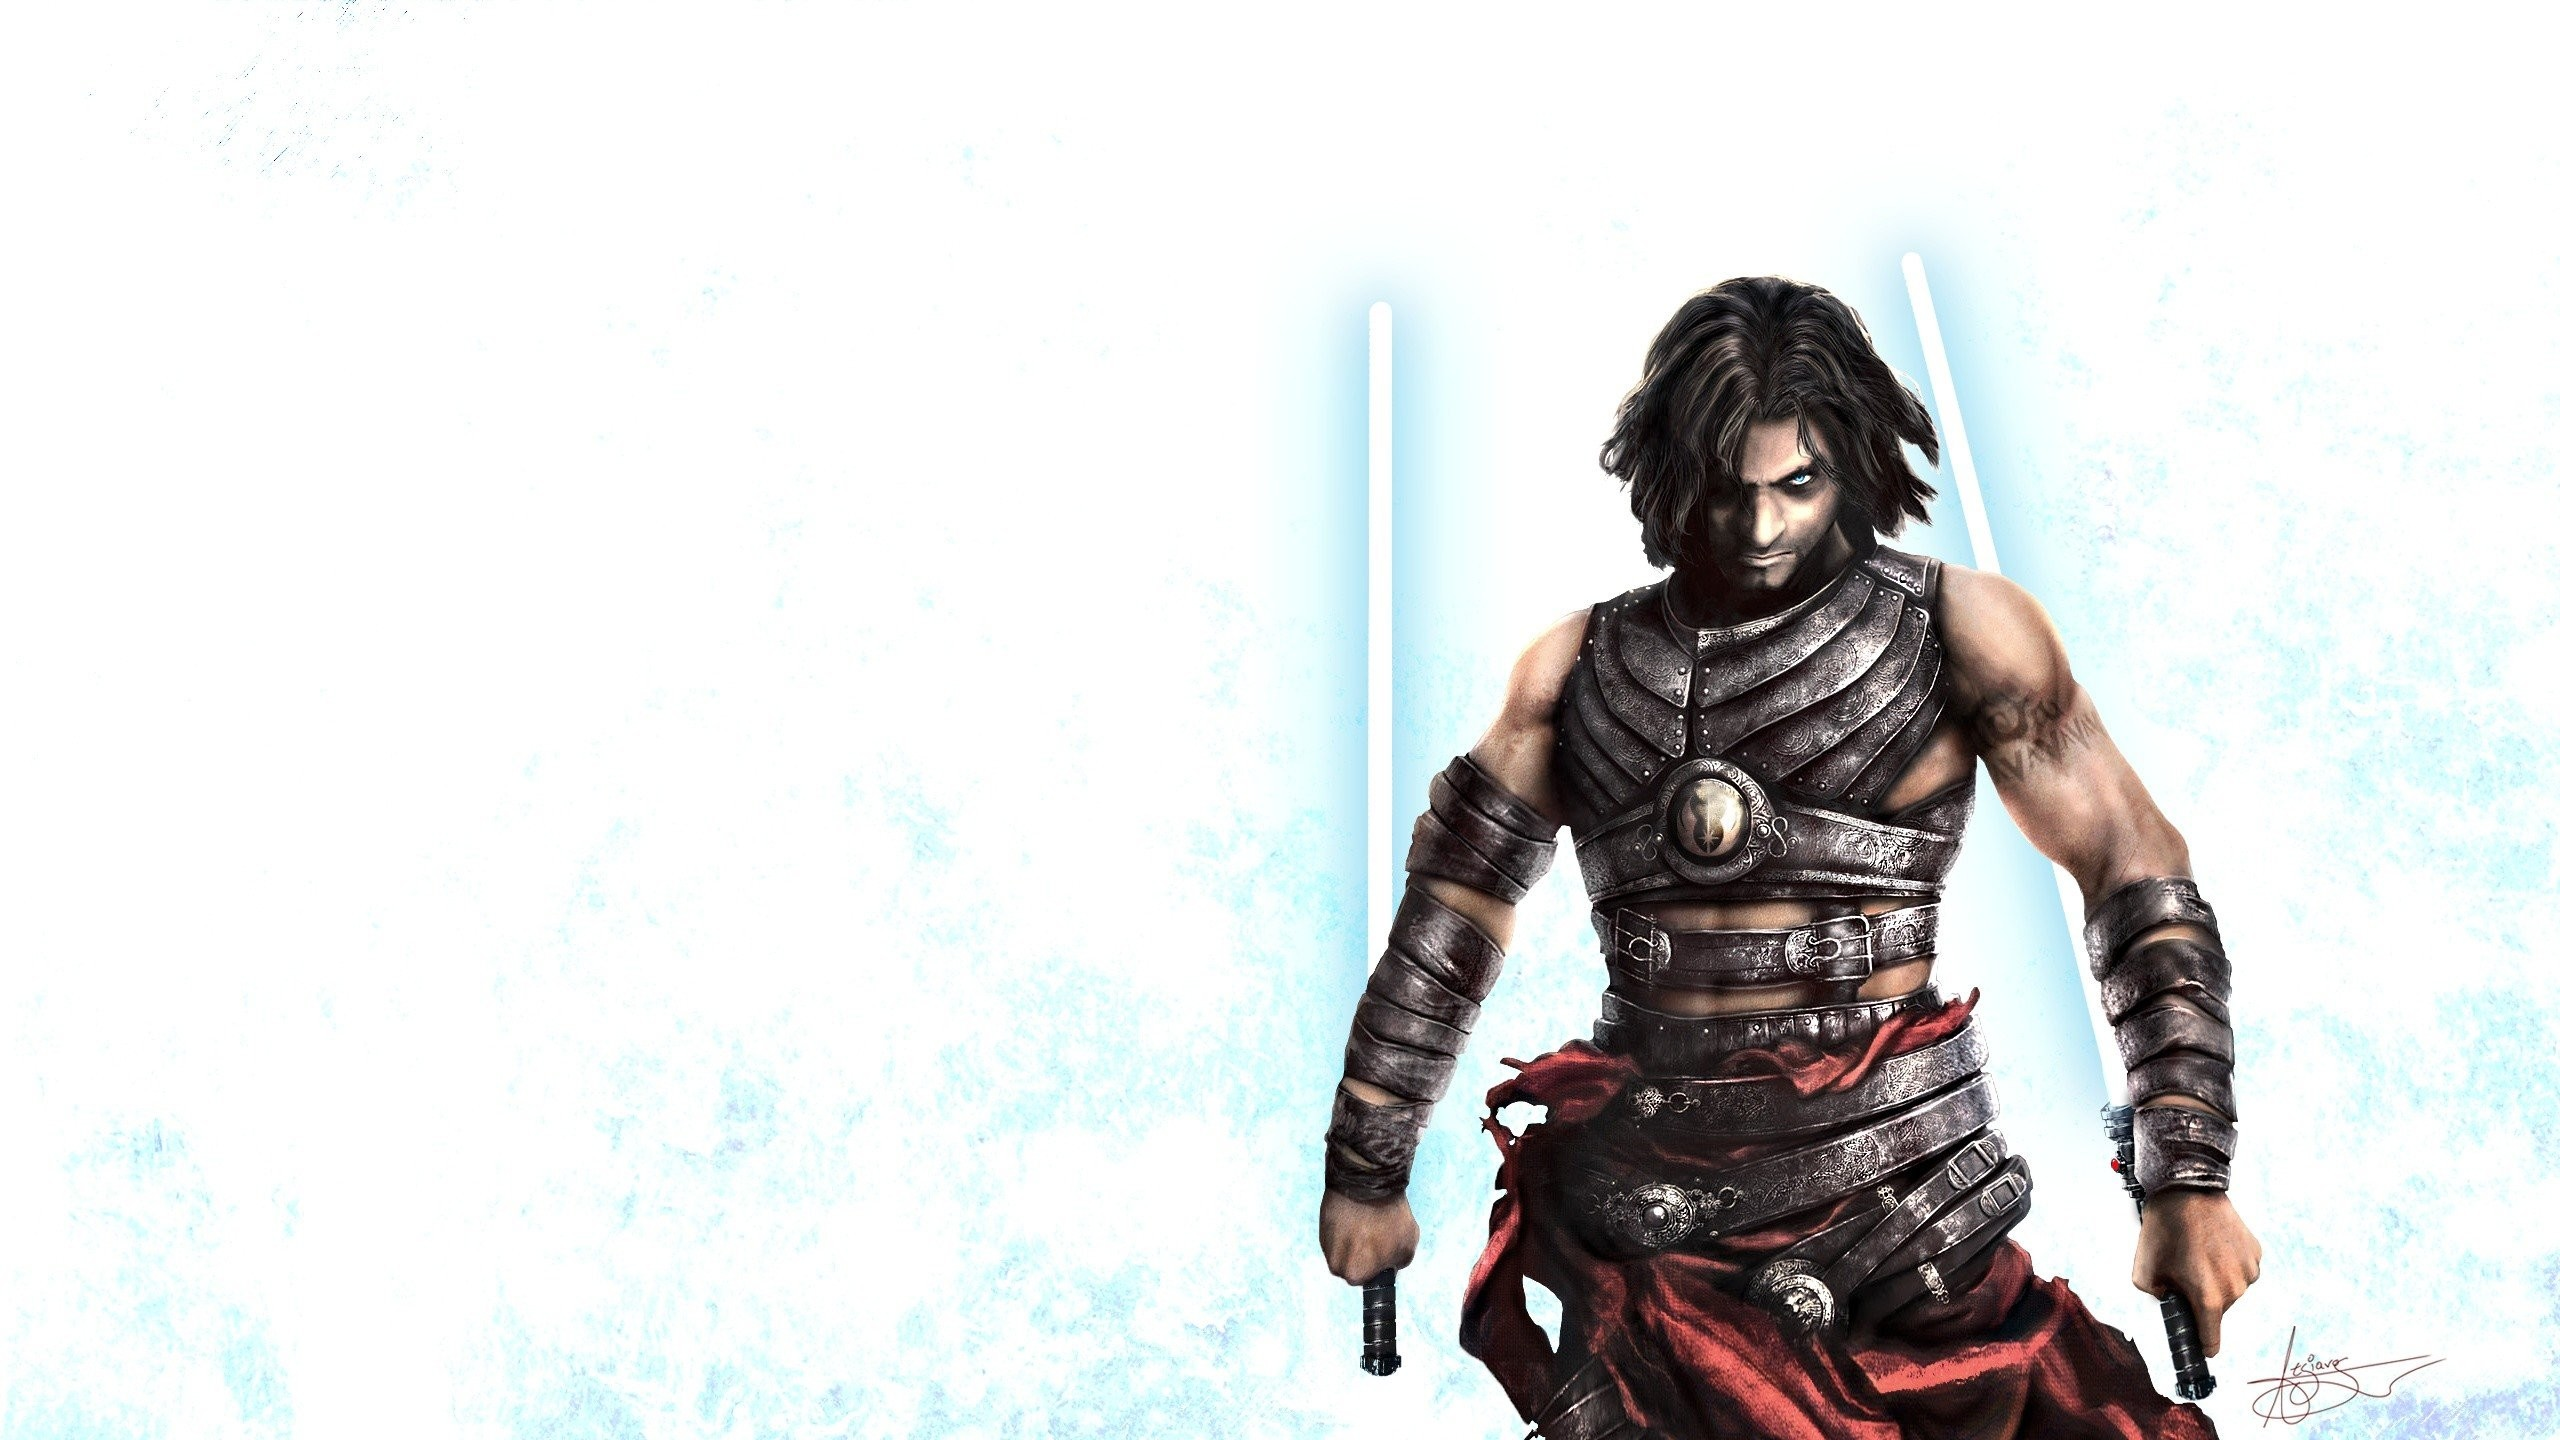 Star Wars video games lightsabers Prince of Persia prince Starkiller simple background  wallpaper | | 308059 | WallpaperUP